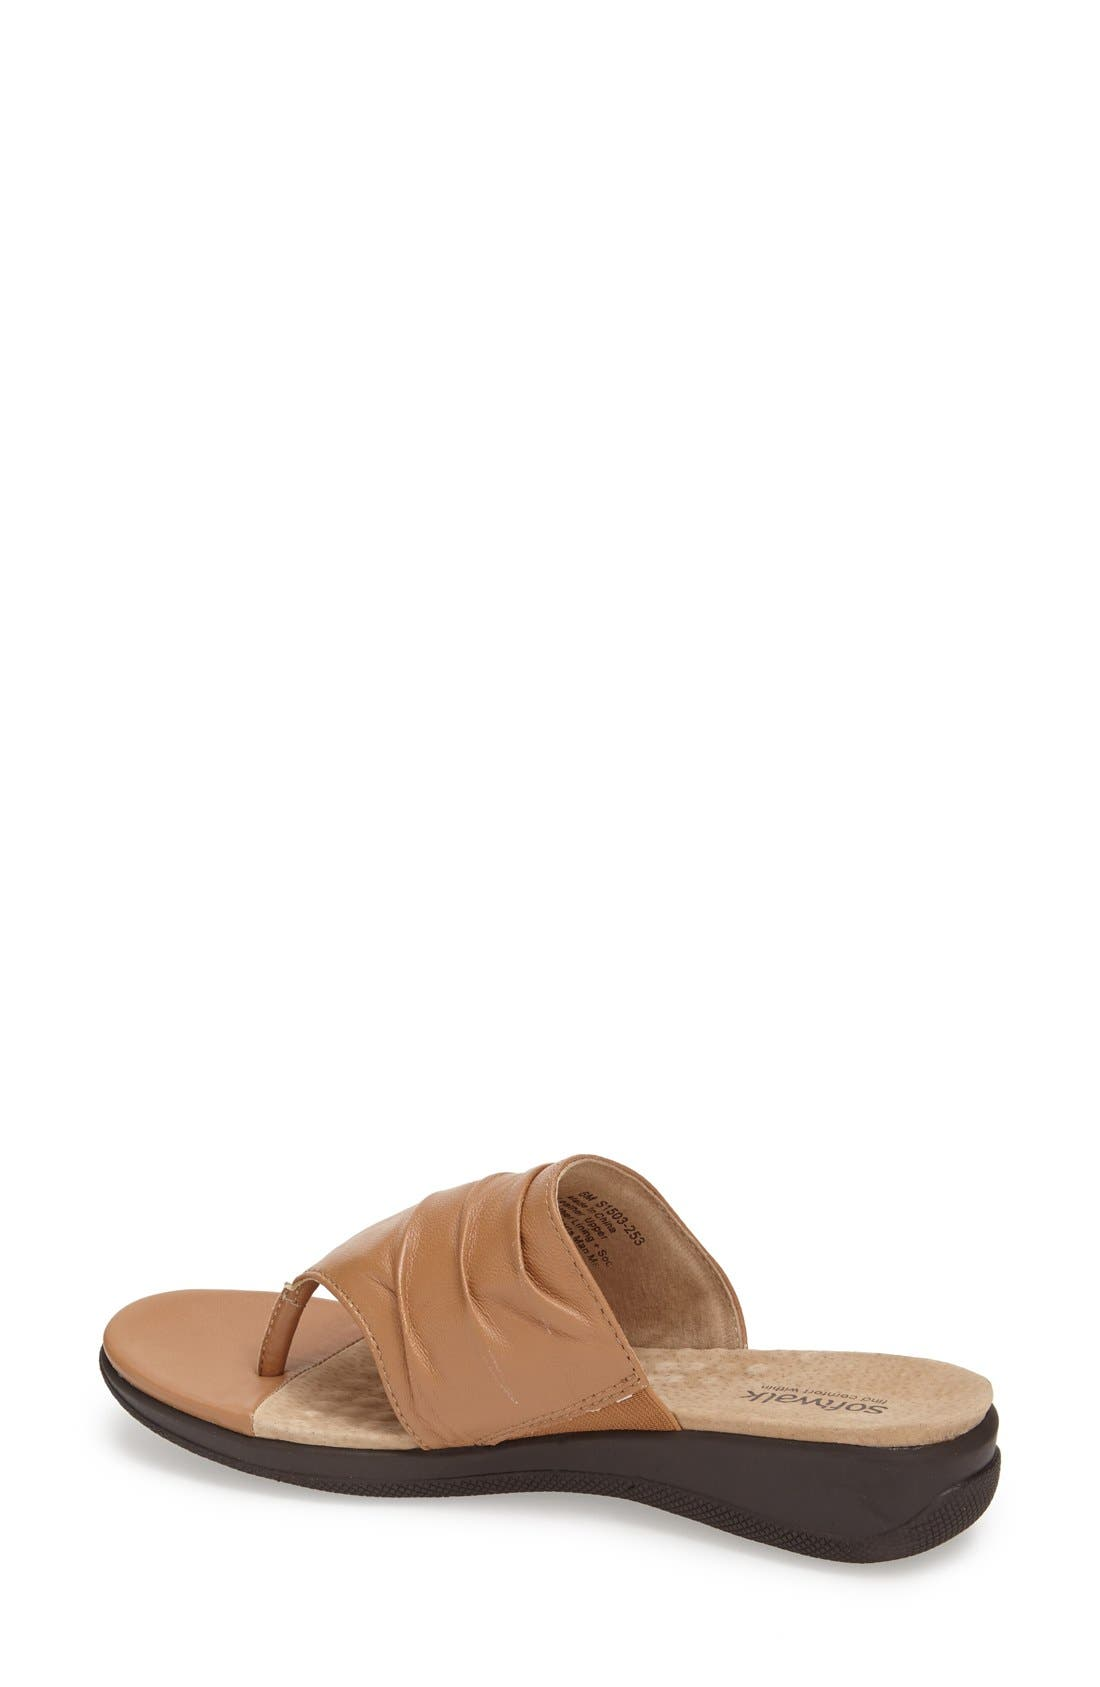 'Toma' Thong Sandal,                             Alternate thumbnail 2, color,                             Tan